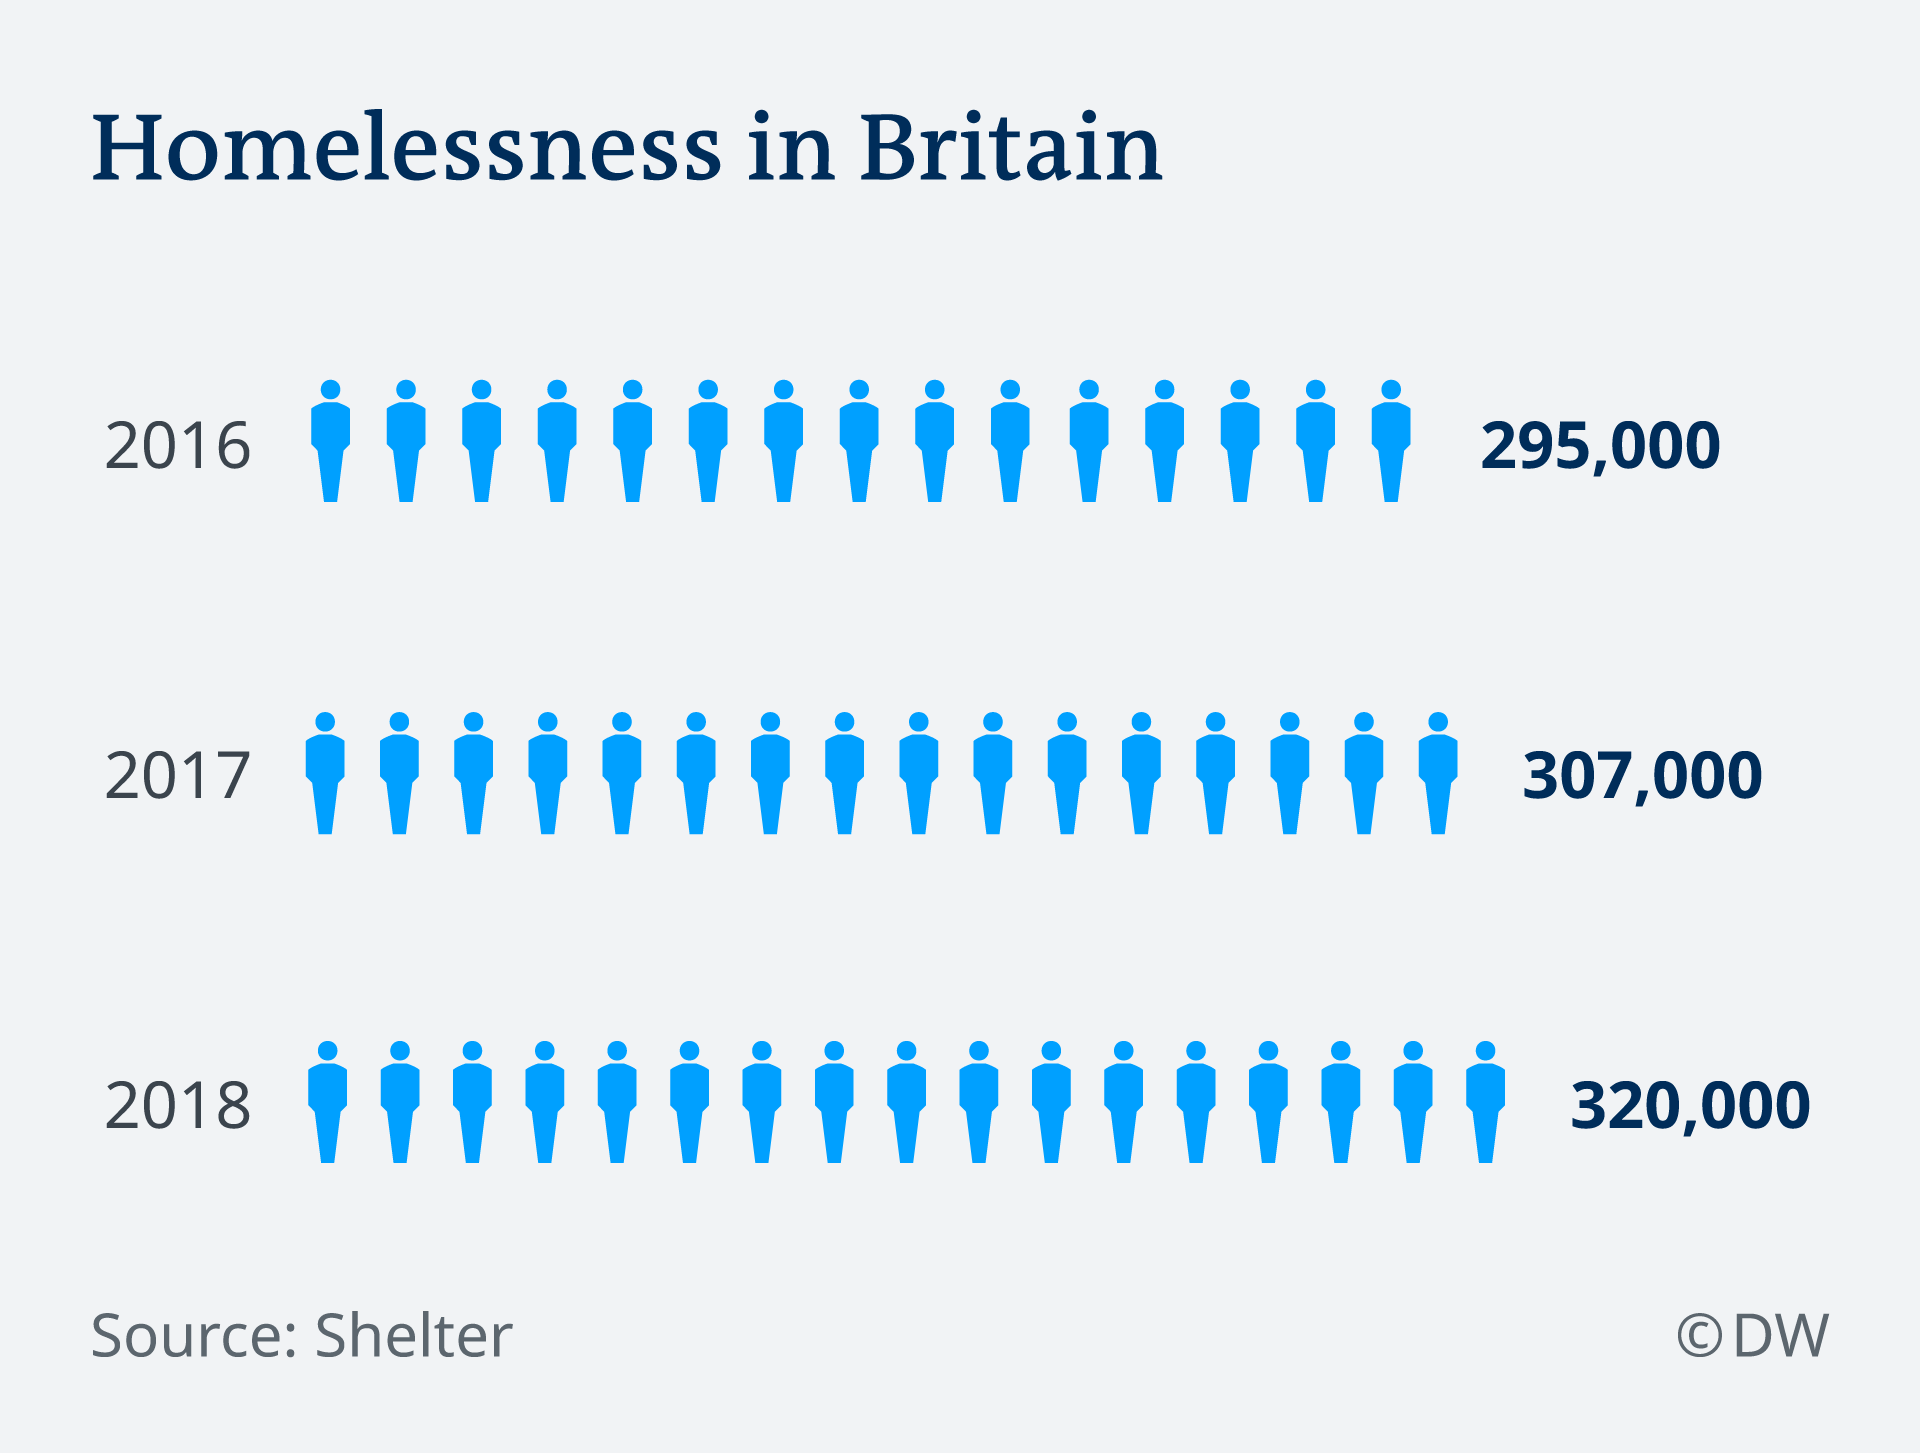 Infographic showing rising numbers of homeless people in Britain